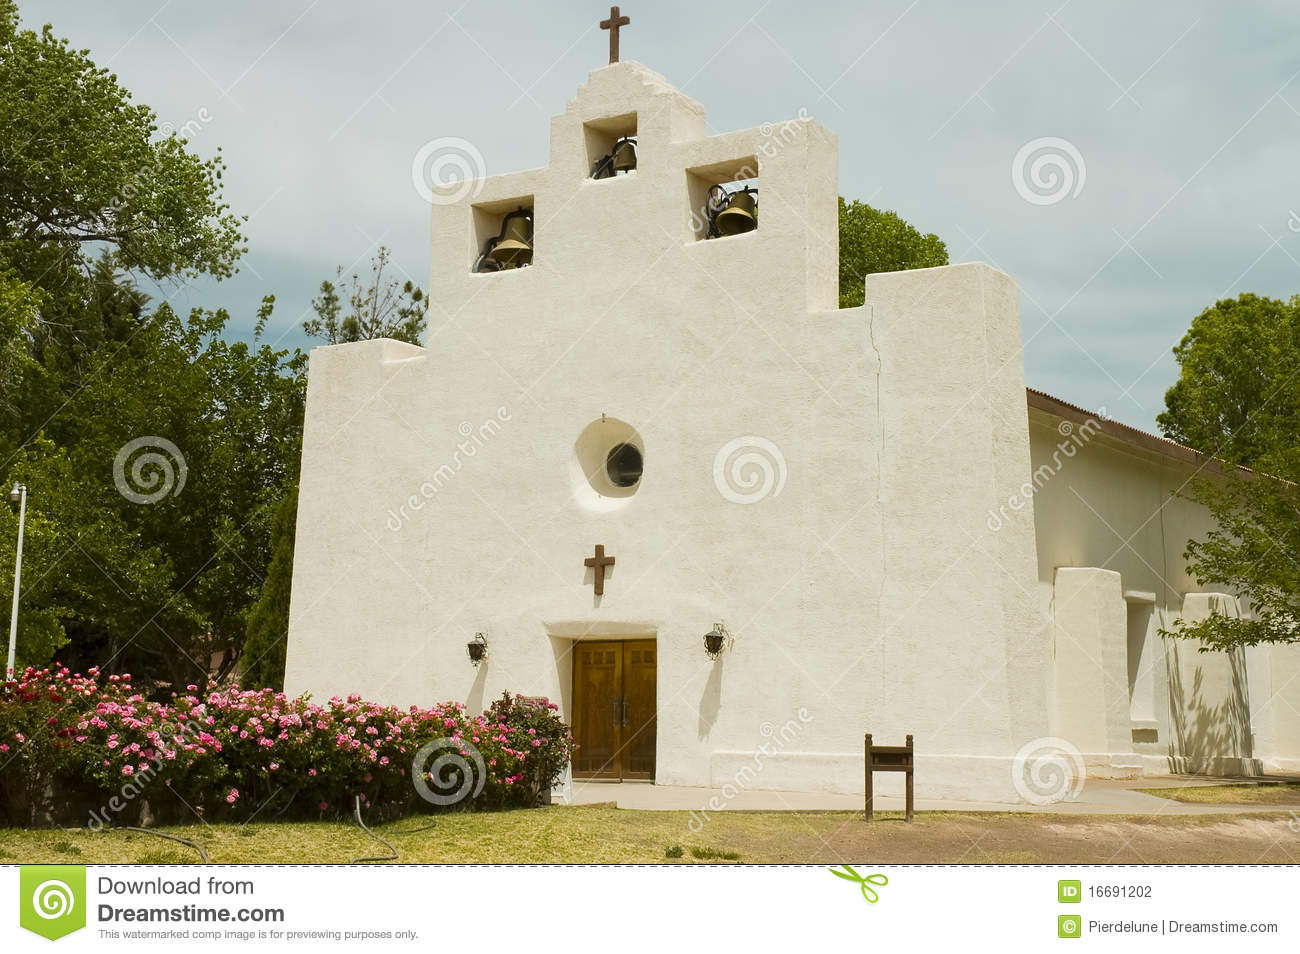 Mission church in stucco stock photo image of for Mission stucco